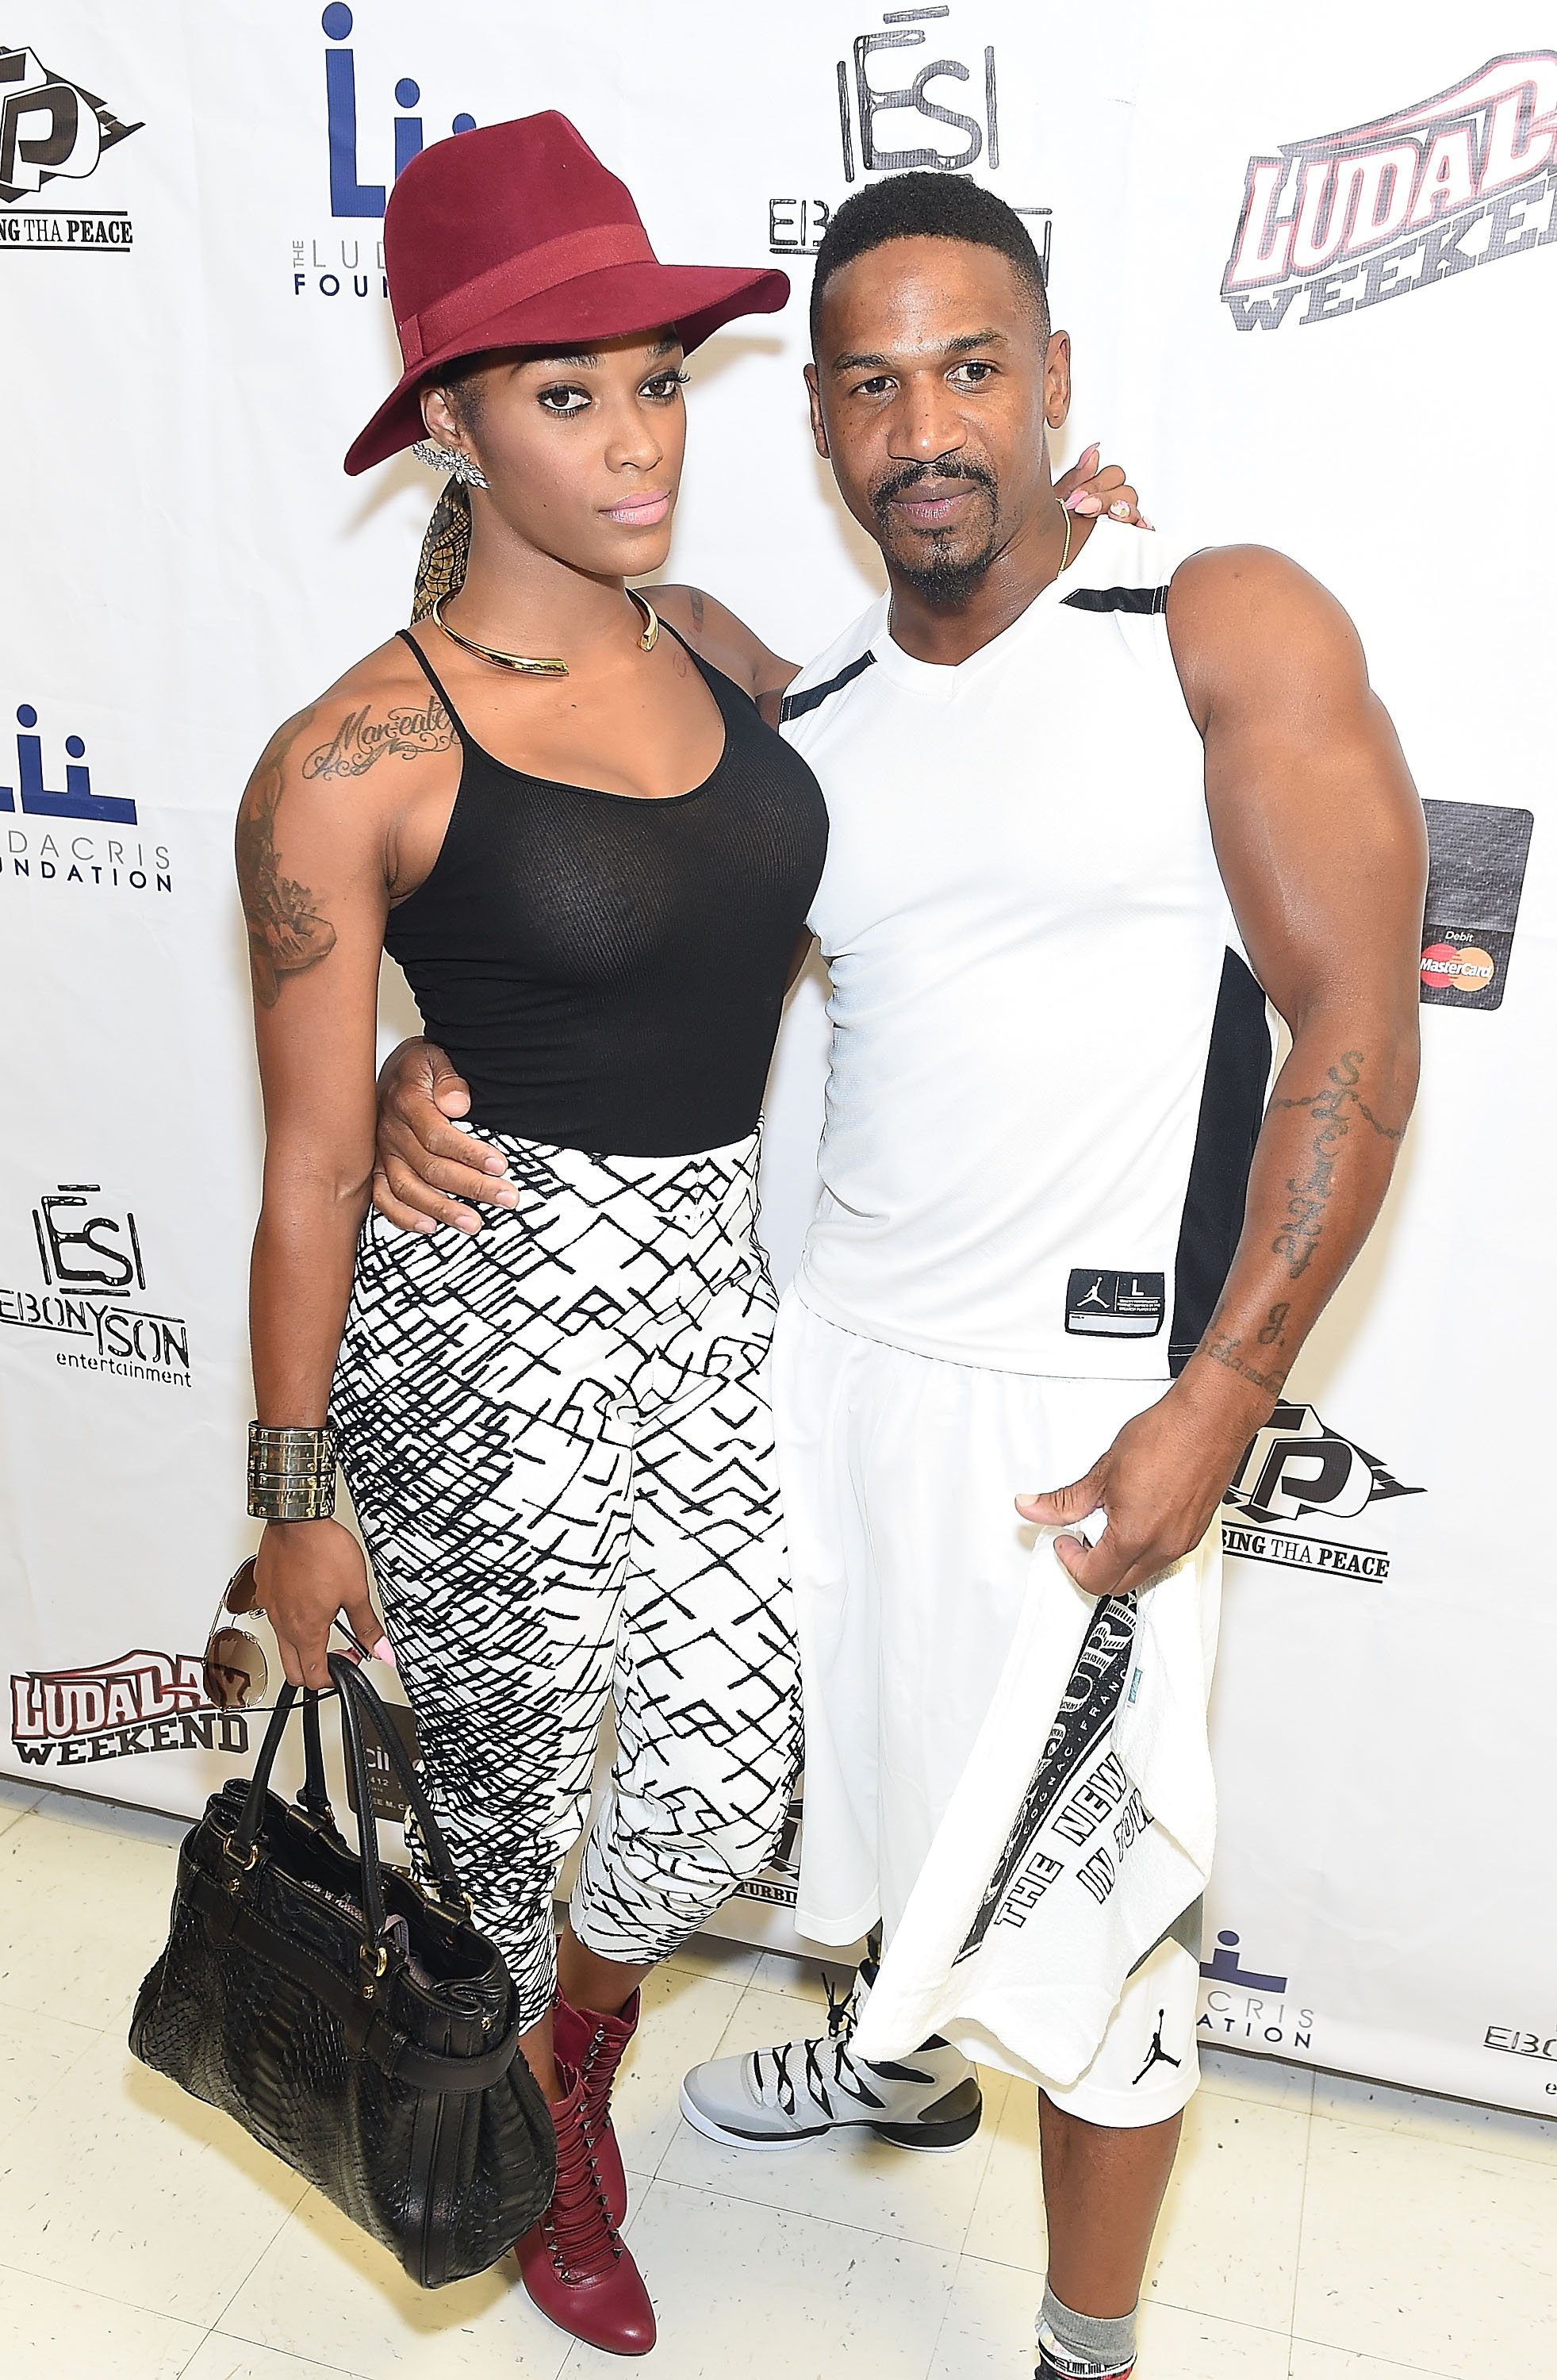 (Before the split) Joseline Hernandez & Stevie J attend the LudaDay Celebrity Basketball Game on Aug. 31, 2014 in Atlanta, Georgia | Photo: Getty Images